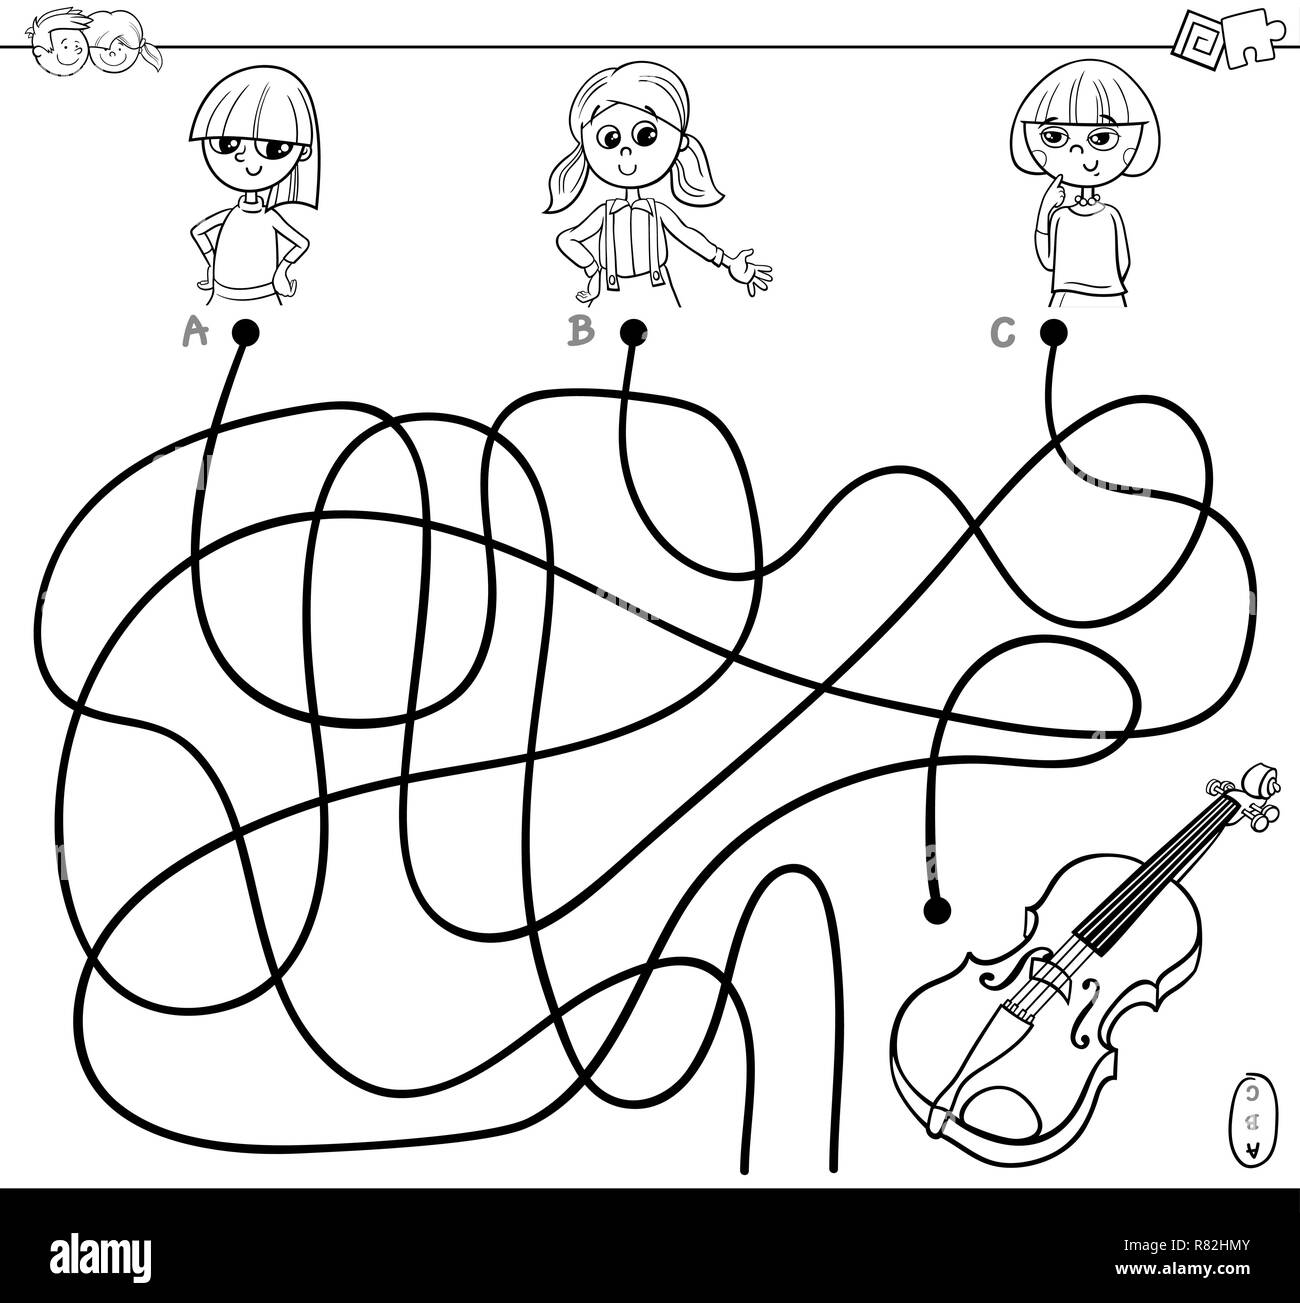 Black and white cartoon illustration of paths or maze puzzle game with girls and violin coloring book